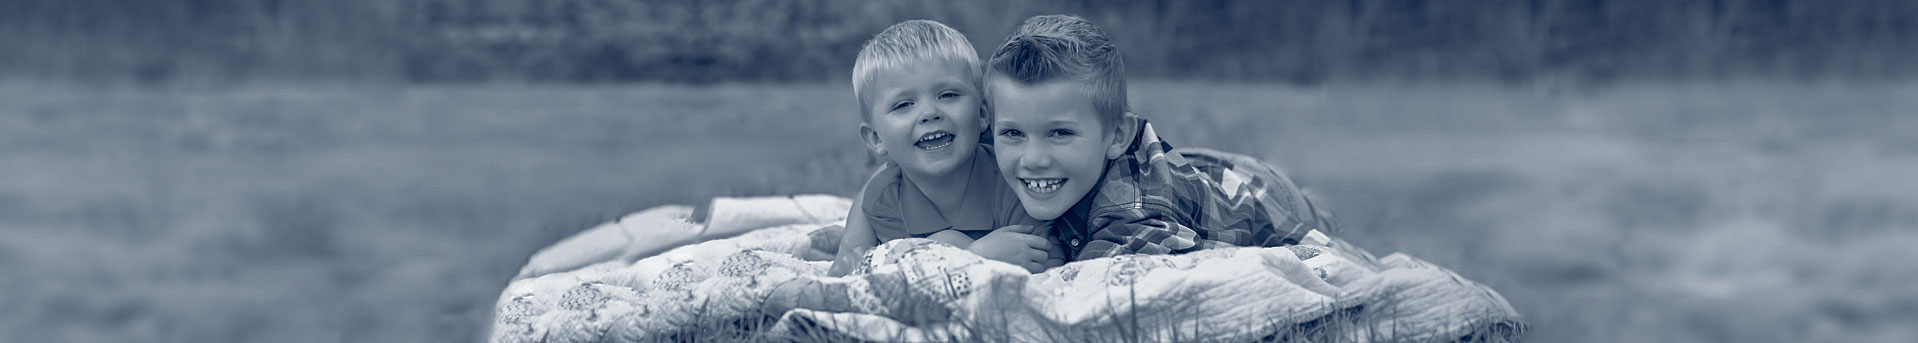 Two boys on blanket, colorized